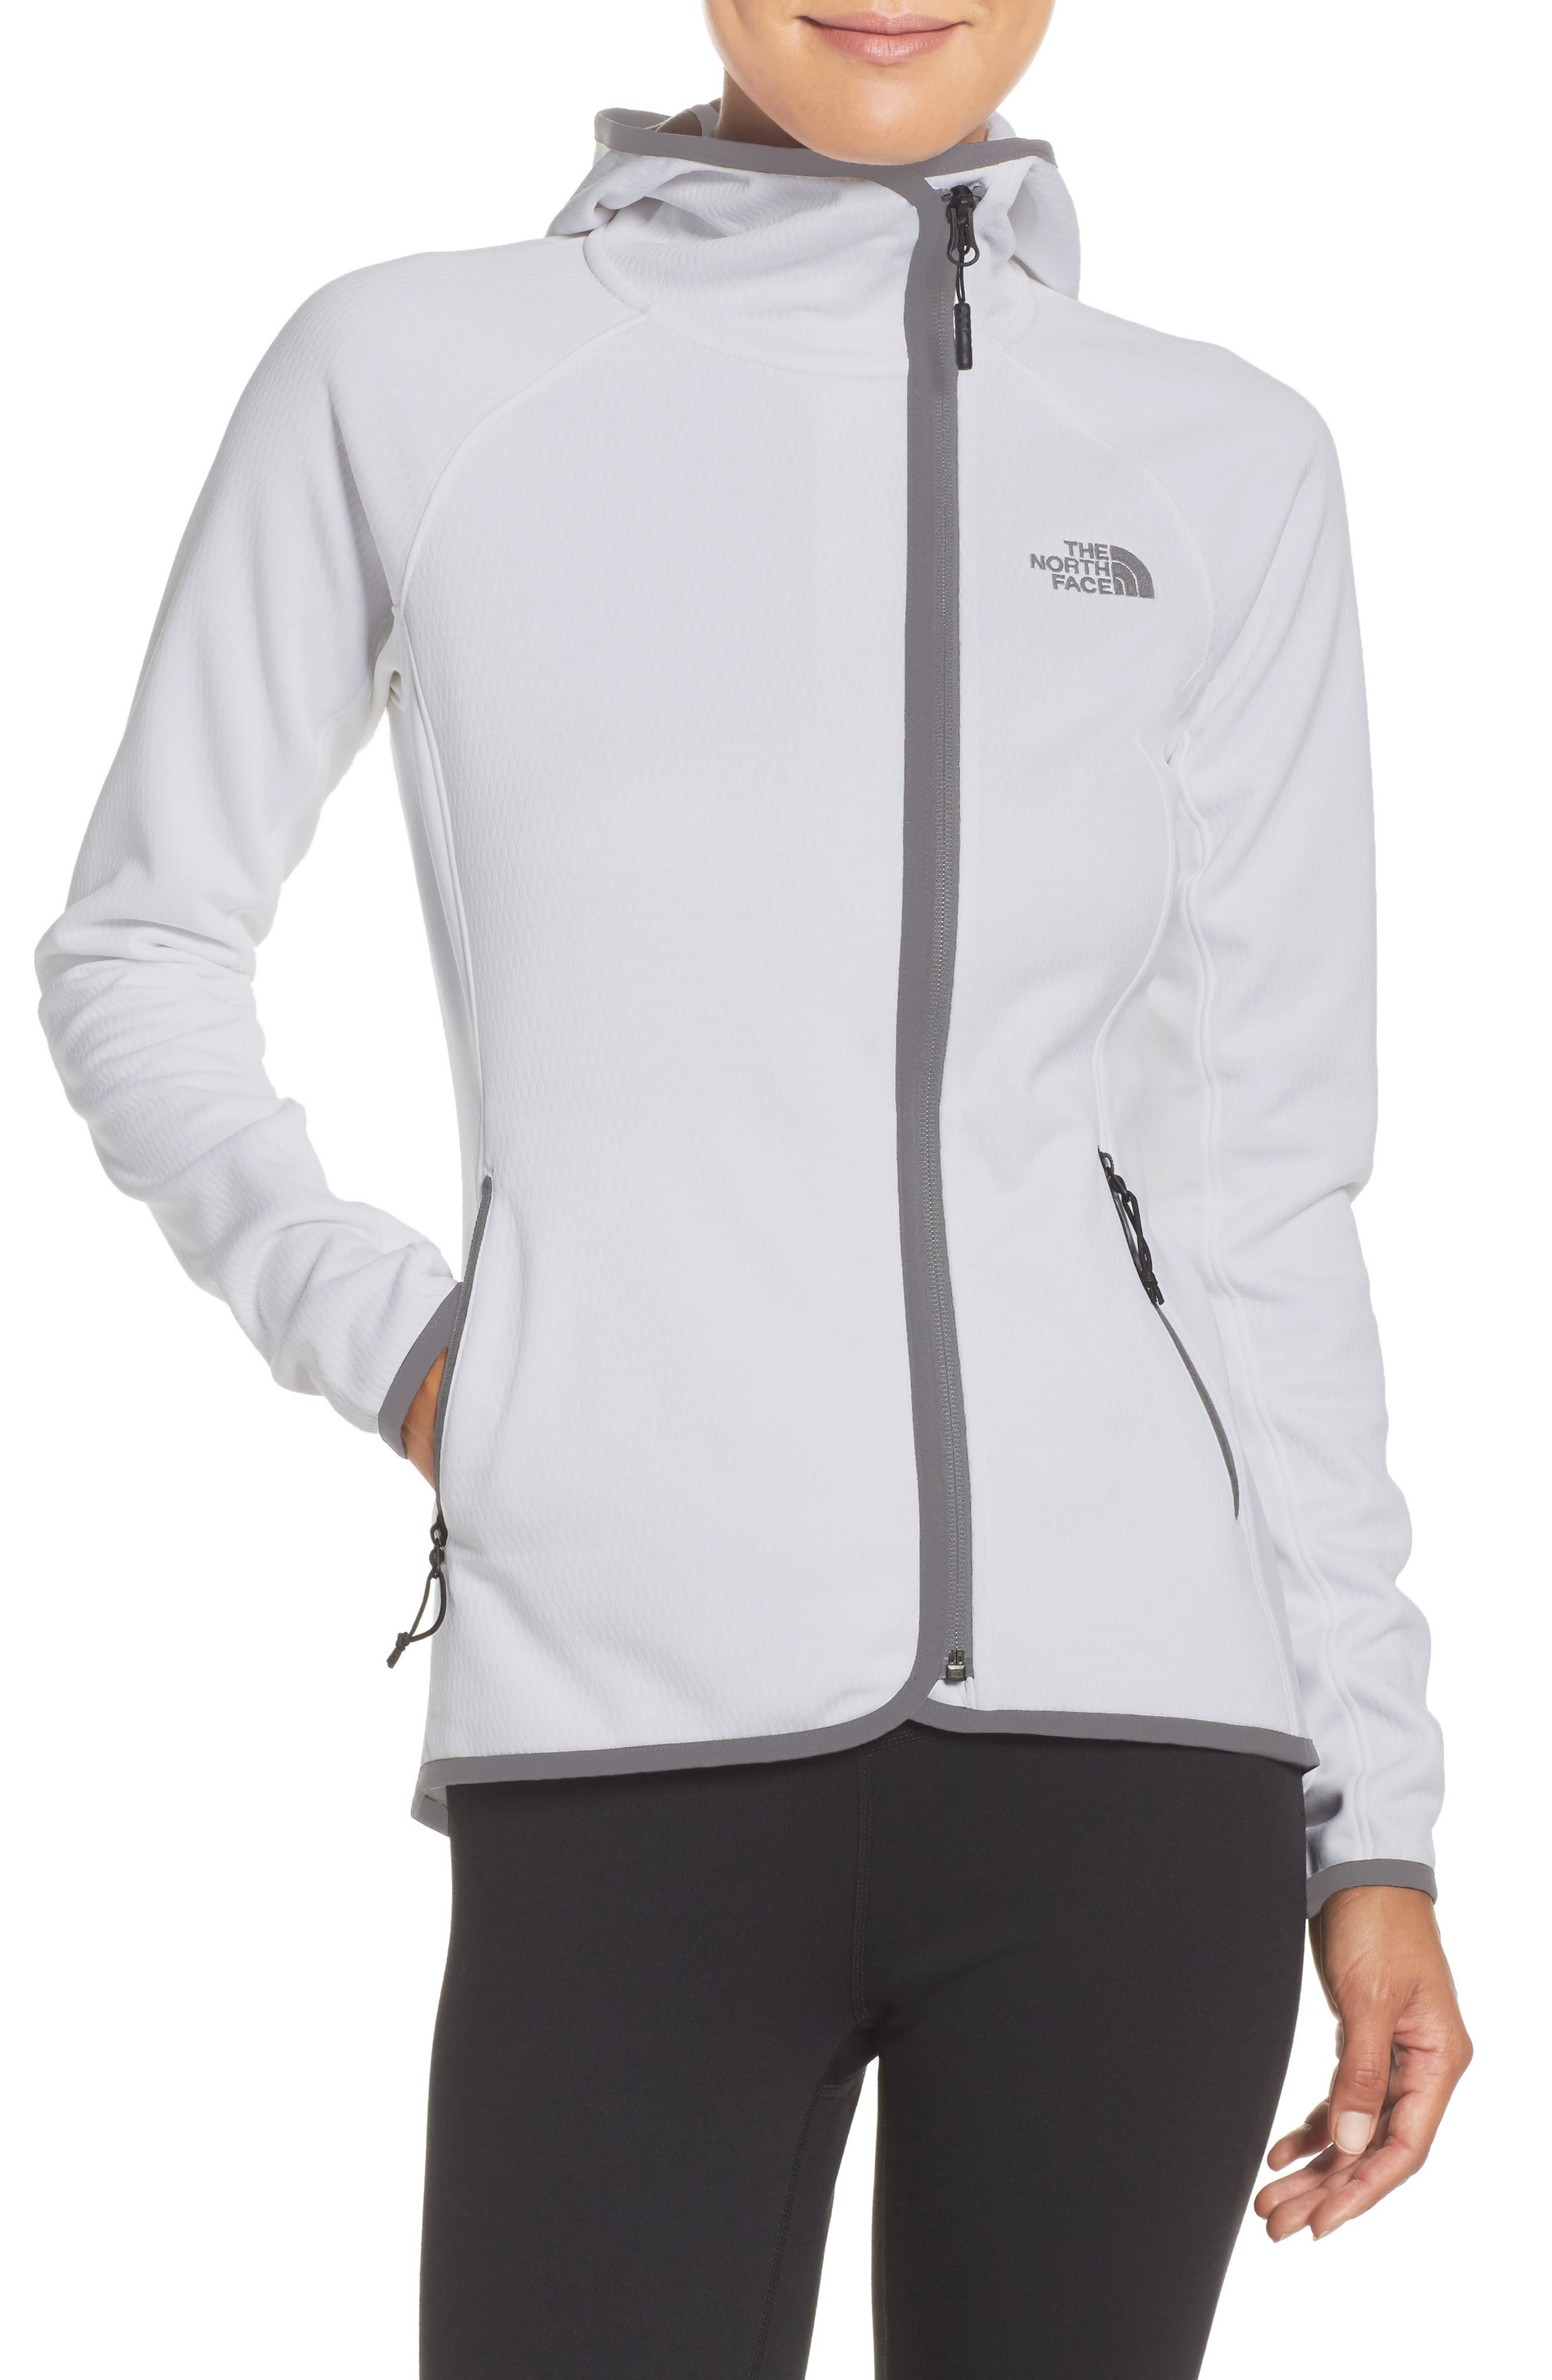 THE NORTH FACE Arcata Water Resistant Jacket